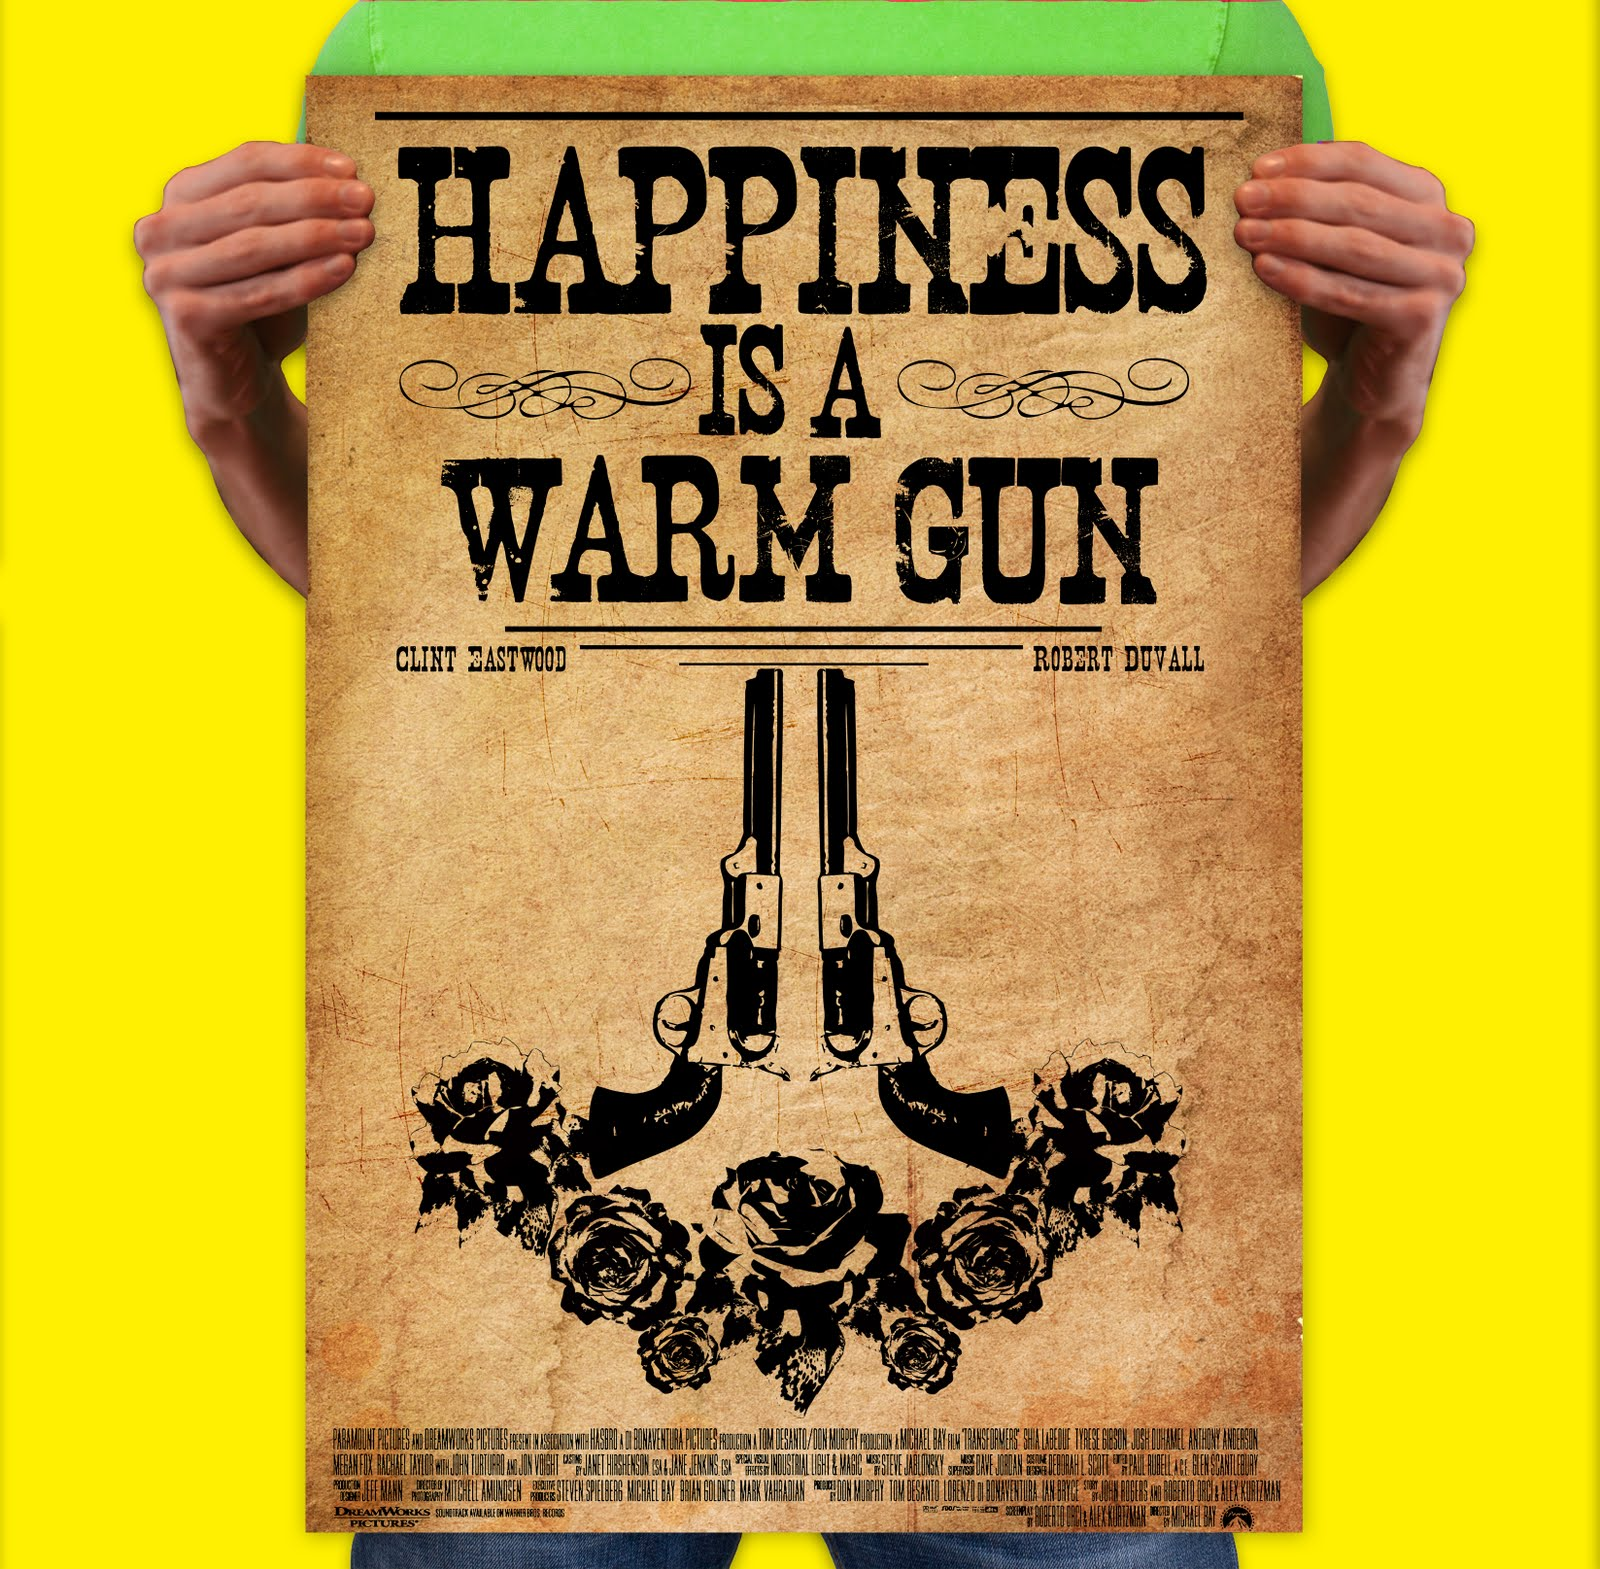 Happiness is warm gun lyrics